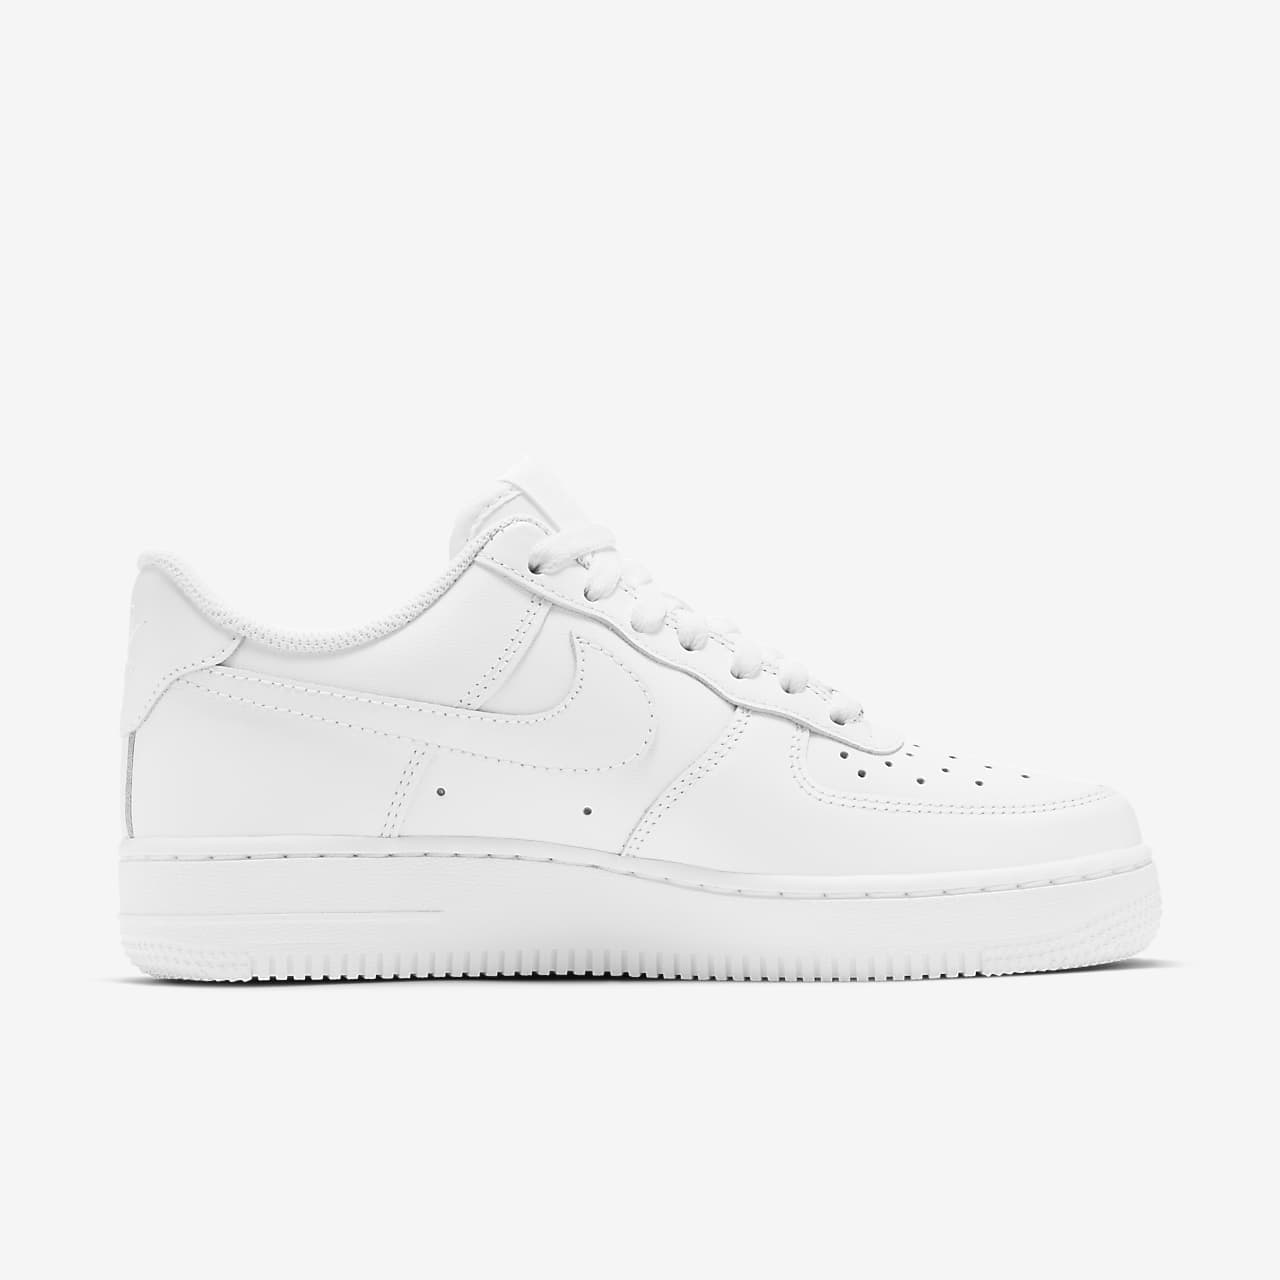 Nike Air Force sneakers cheap 100% authentic good selling vhVSoM